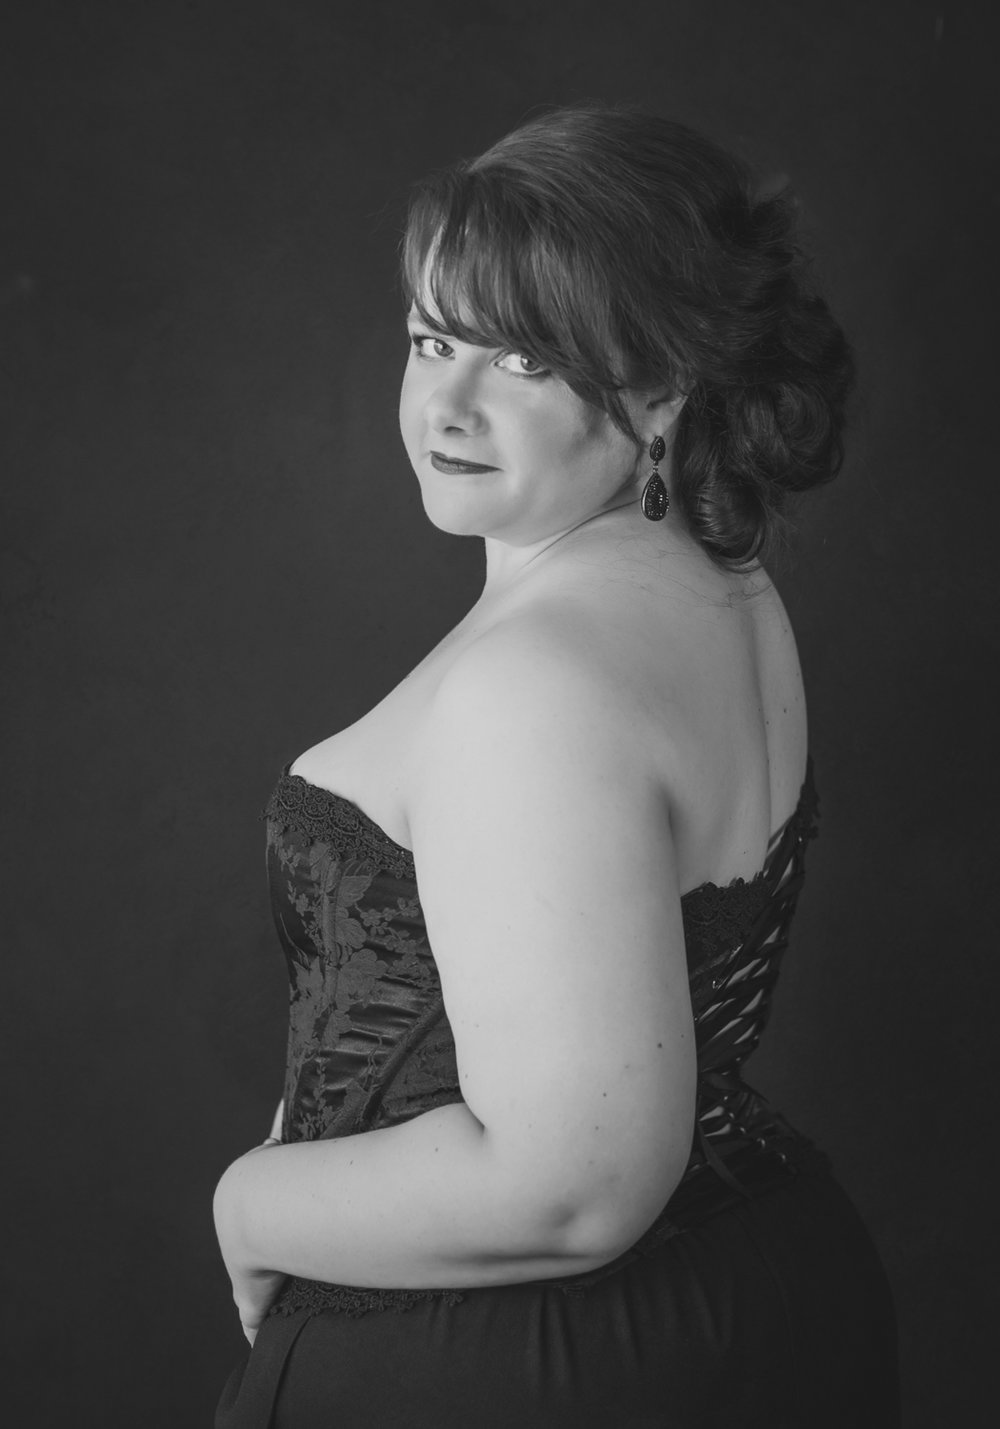 boudoir portrait photography sydney